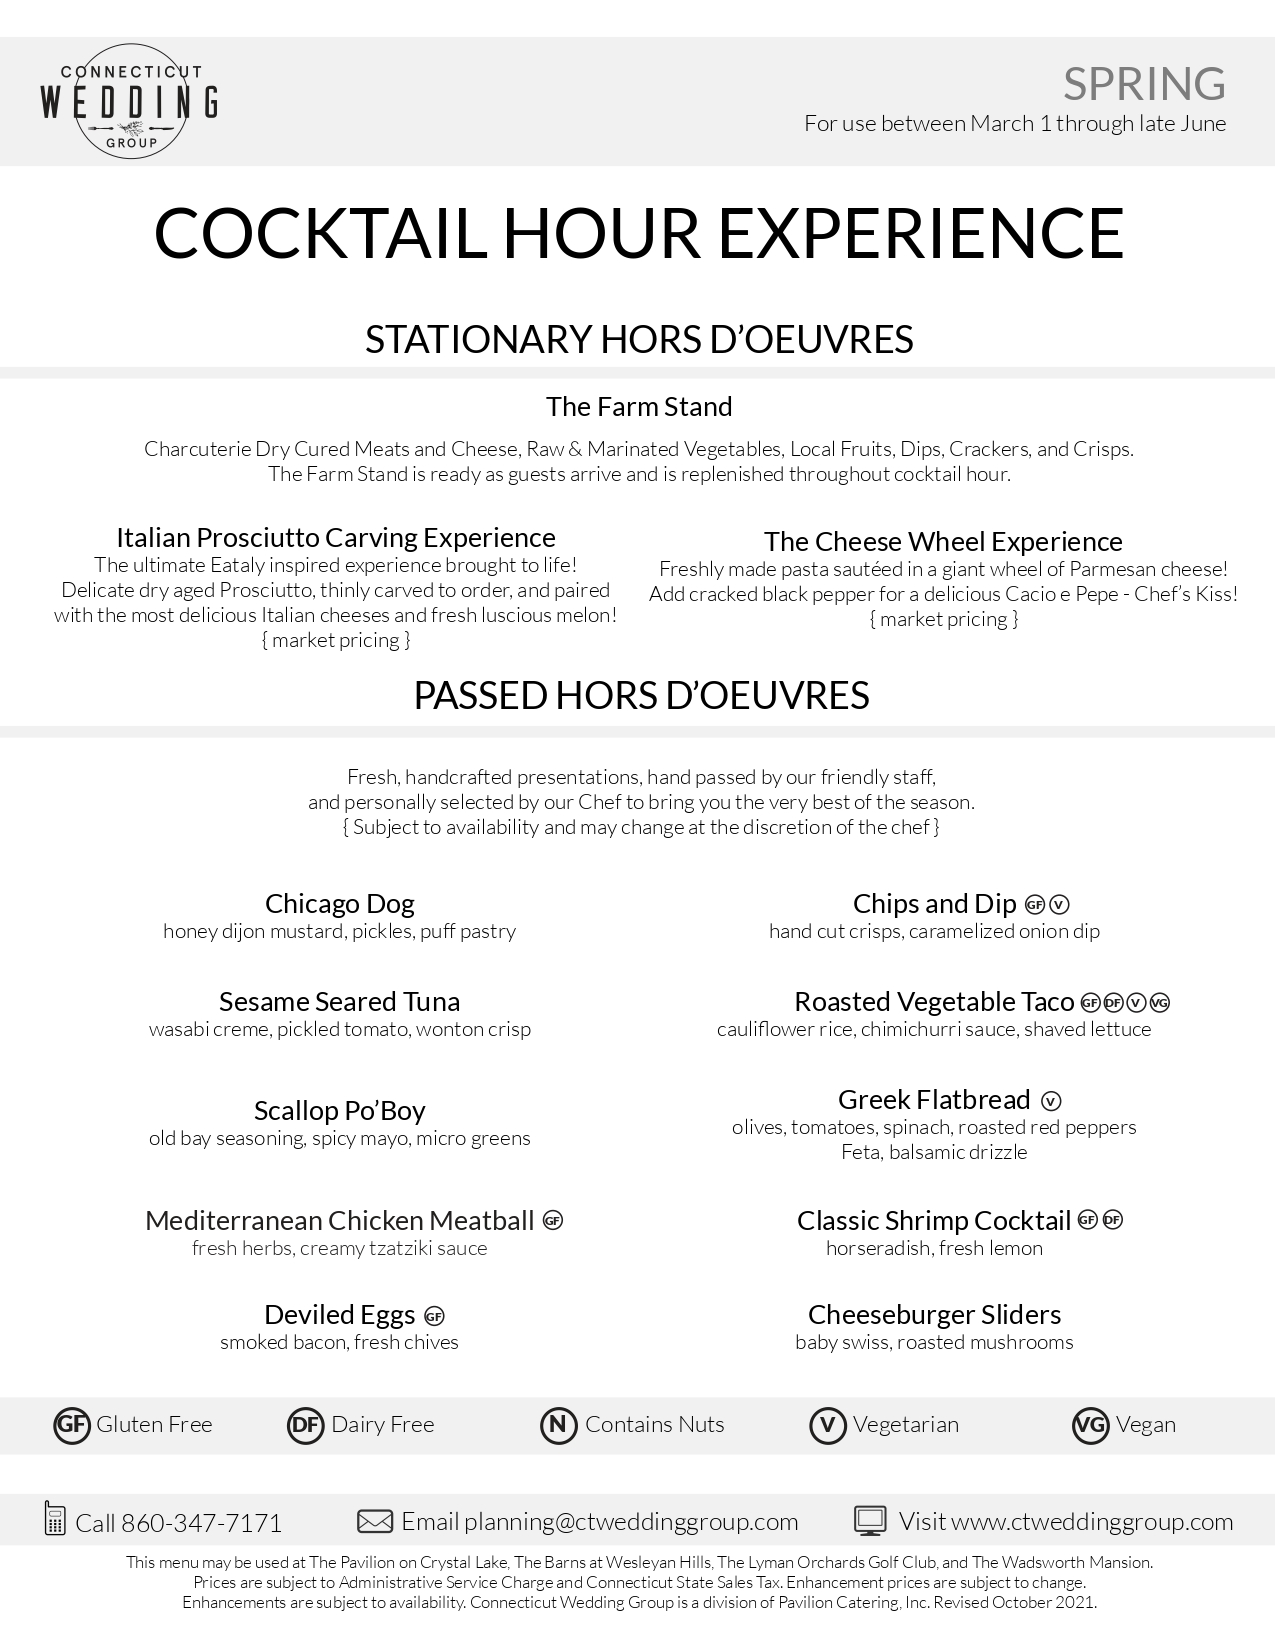 Spring-Cocktail-Hour-Culinary-Experiences-2022_NEW_page-0001